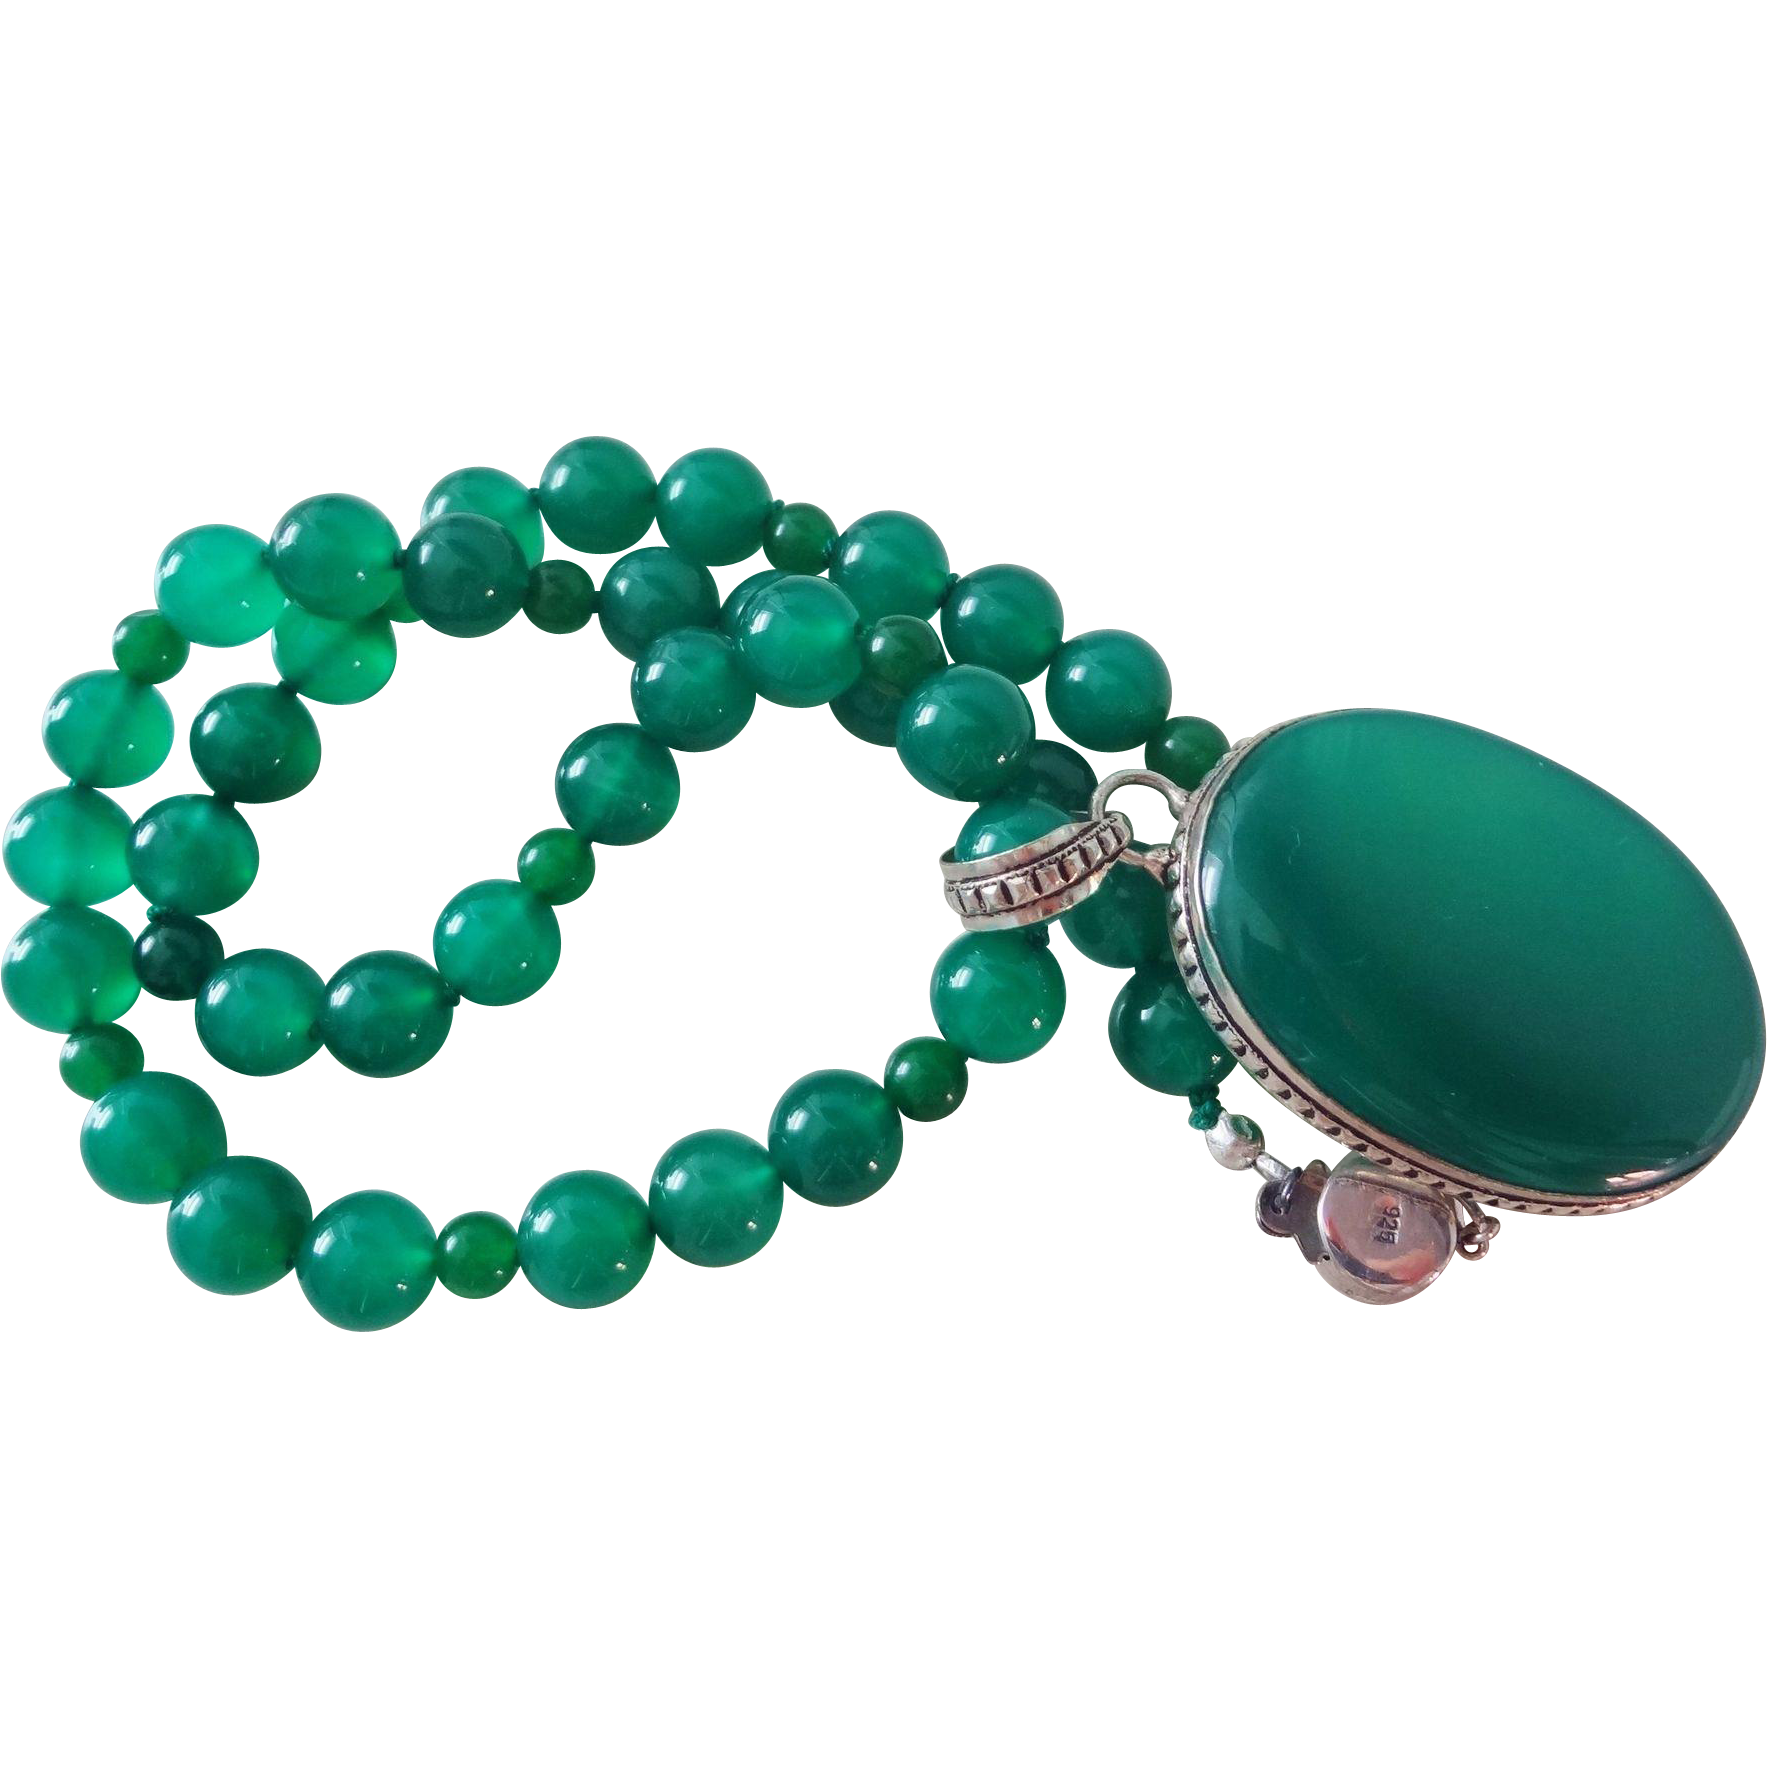 us en modelyellow gold cartier the necklace amulette yellow s de season xs gifts women collections celebrate model chrysoprase for her